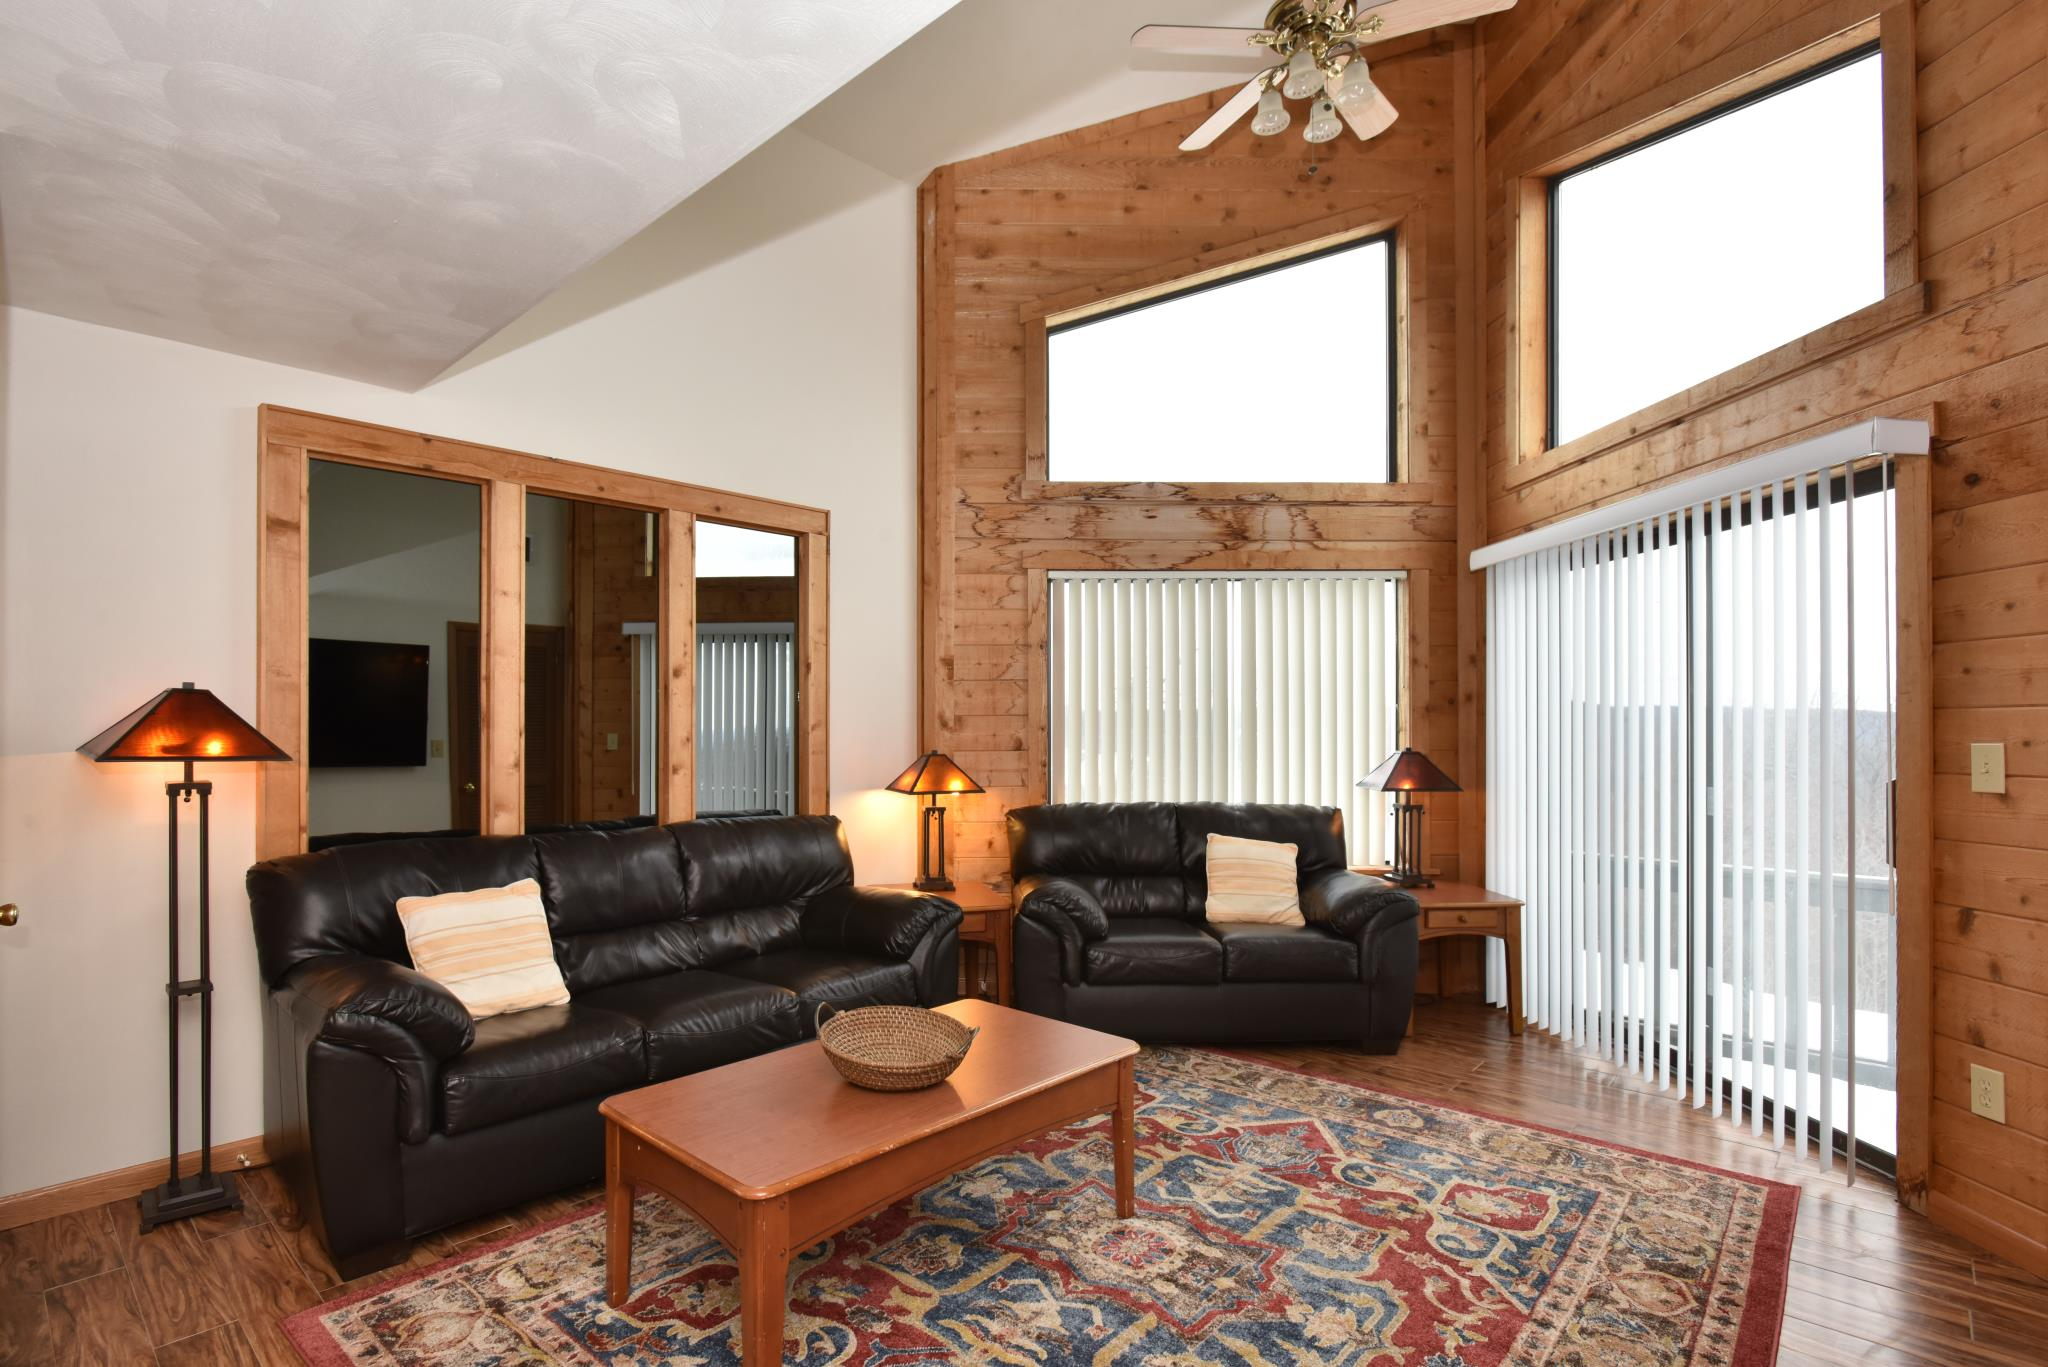 Reserve the perfect condo for your family - We've handpicked beautiful, spacious condos for our guests among several complexes on the mountaintop.Planning is the first part of this incredible vacation. Enjoy!